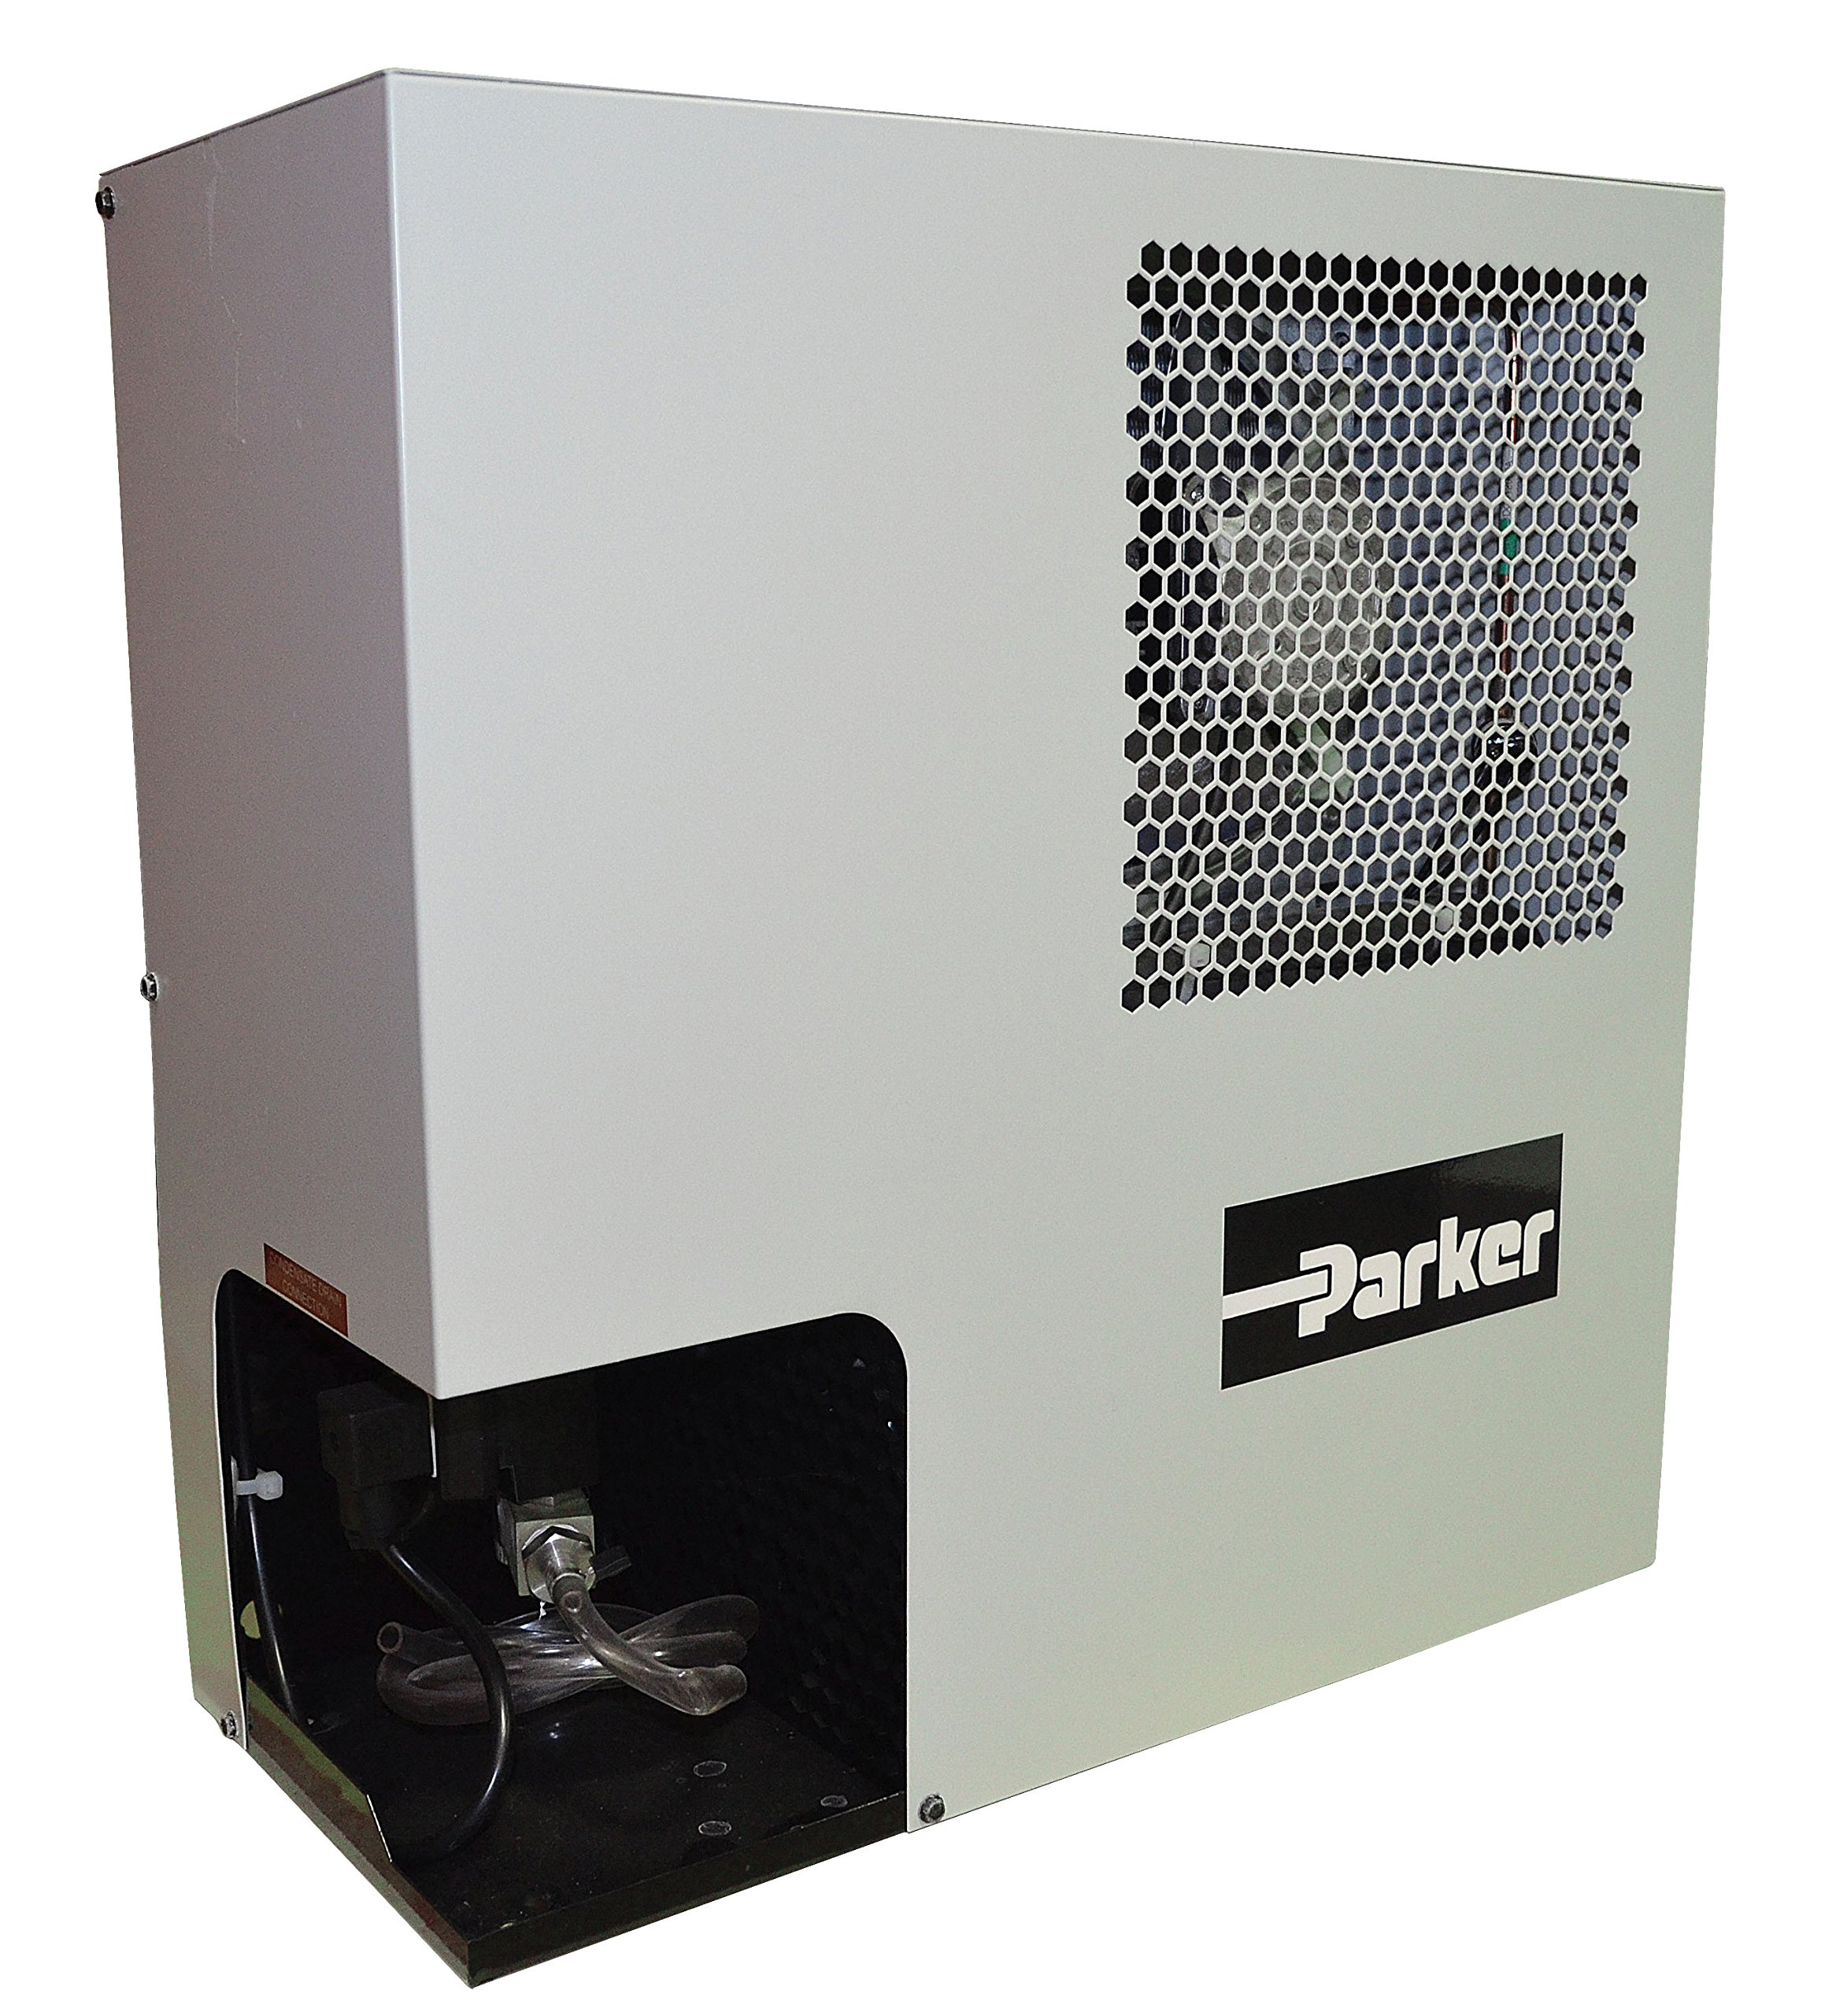 Parker DRD10-115160-PF Starlette Plus Refrigerated Air Dryer, 115 Volts/1 Phase/60 Hz, 10 cfm, 1/2'' NPTF